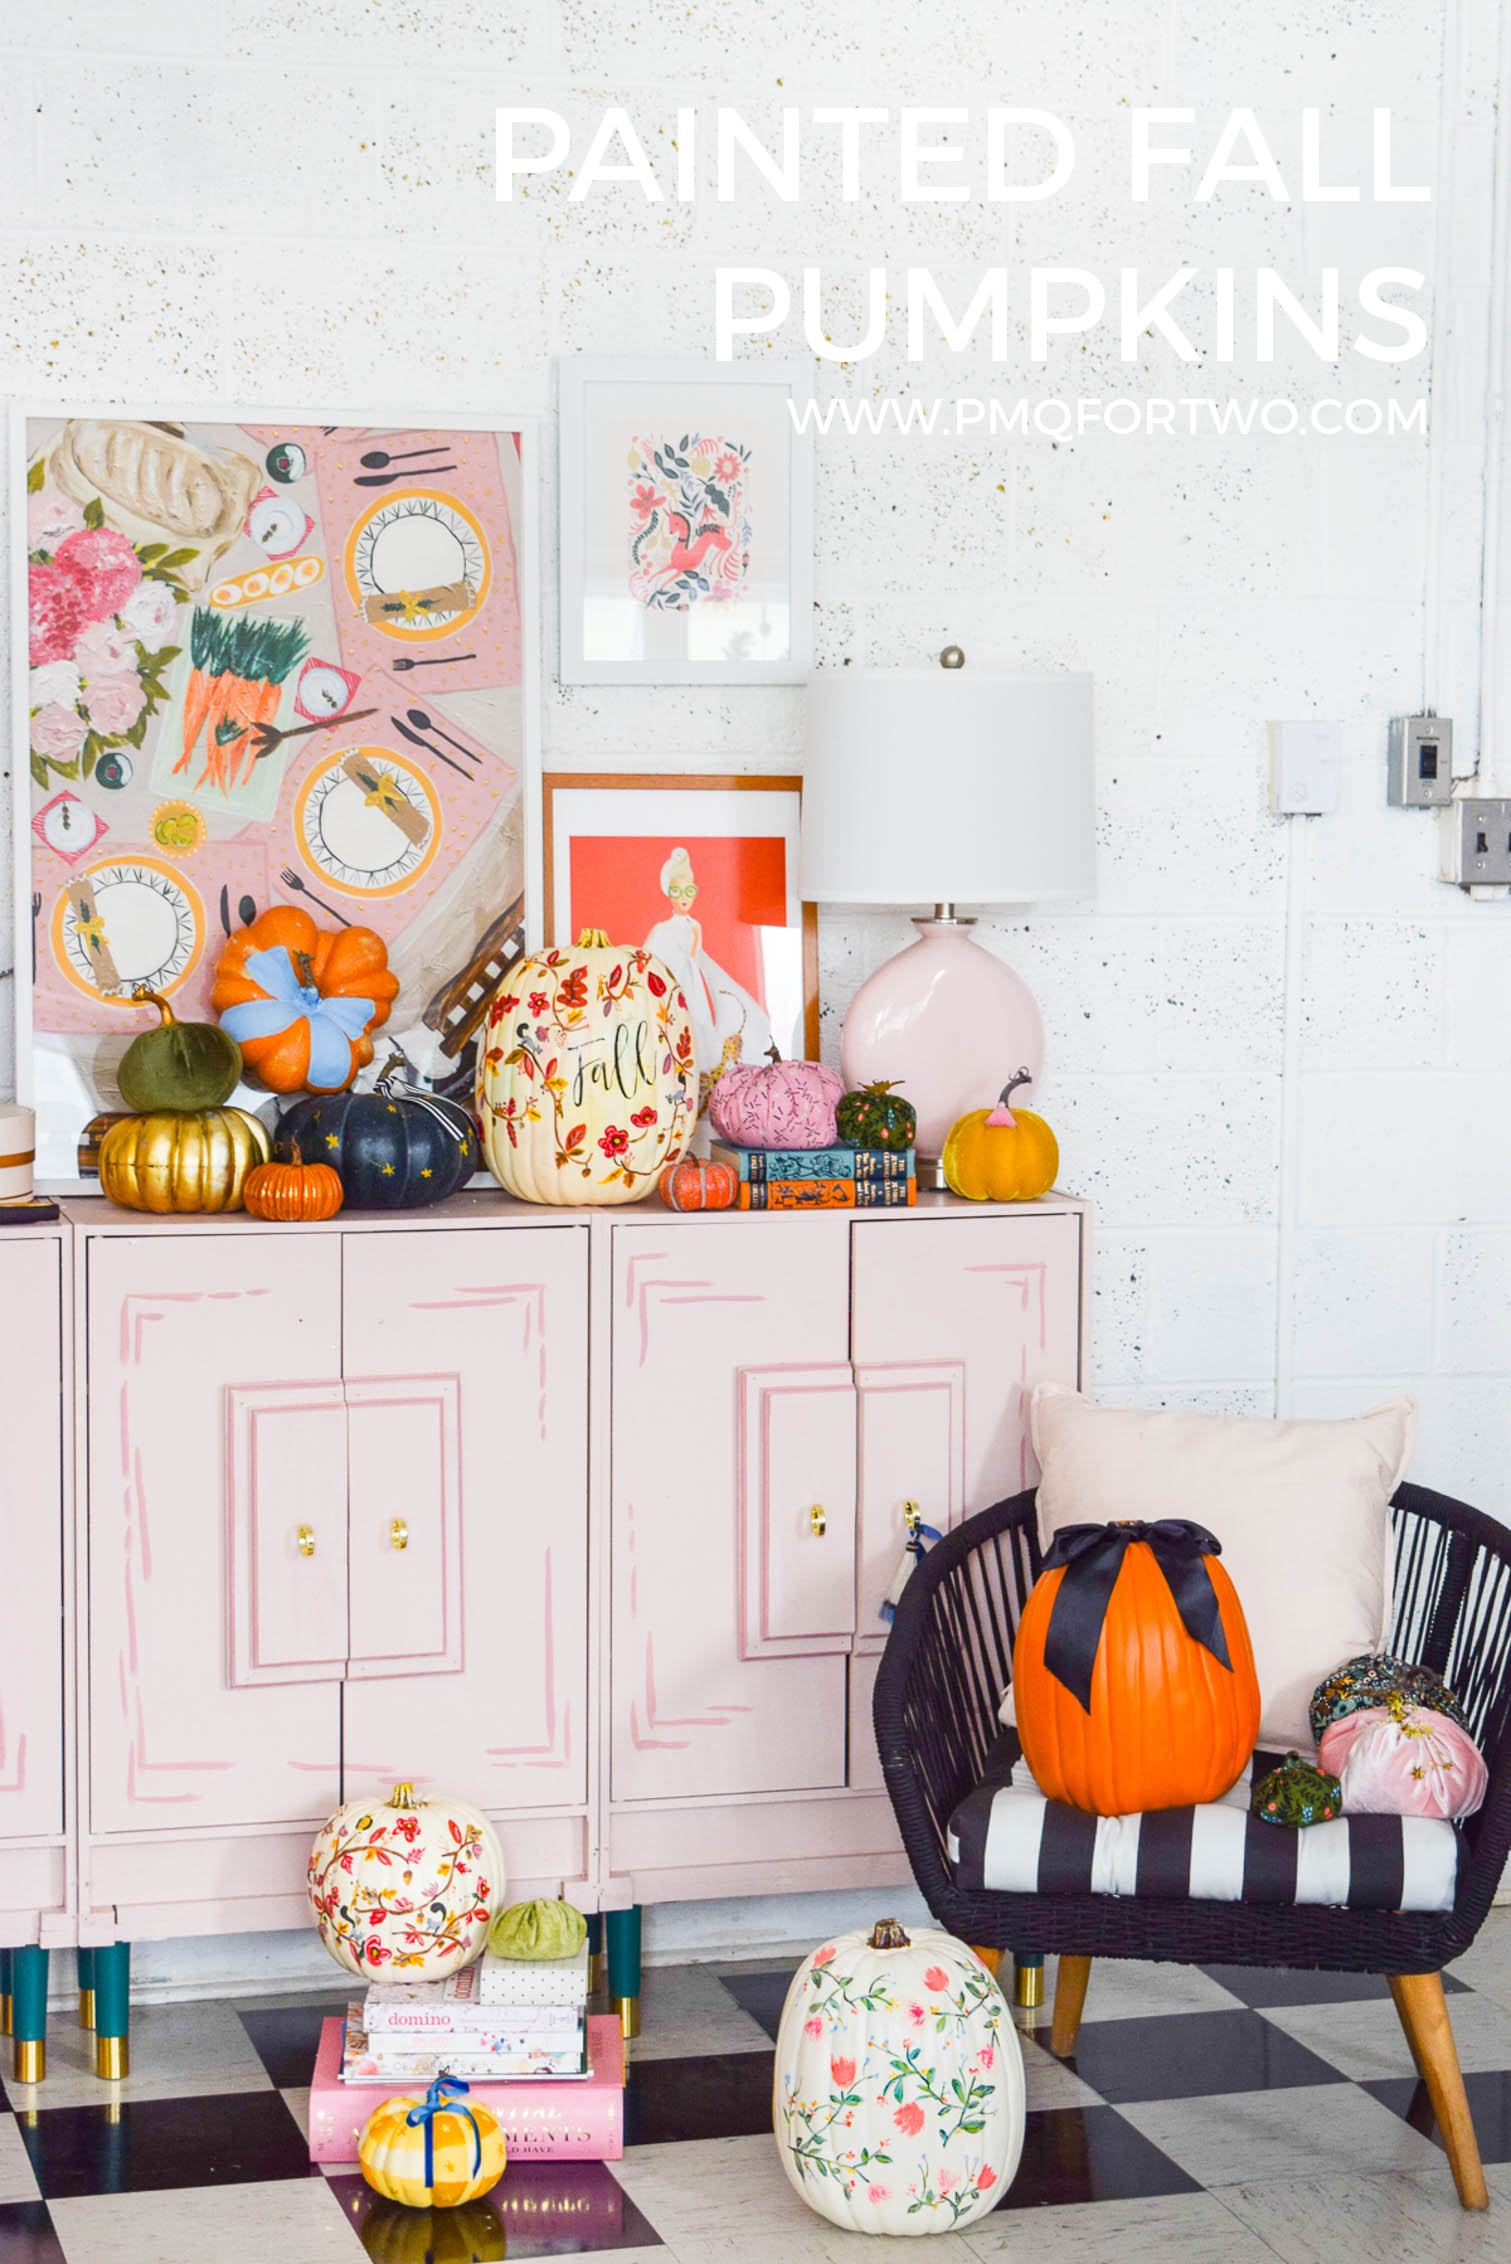 There's nothing like a fresh coat of paint to turn those generic plastic pumpkins into works of art. I've got a few different styles of DIY Painted Pumpkins & tutorials on the blog, so come check it out!